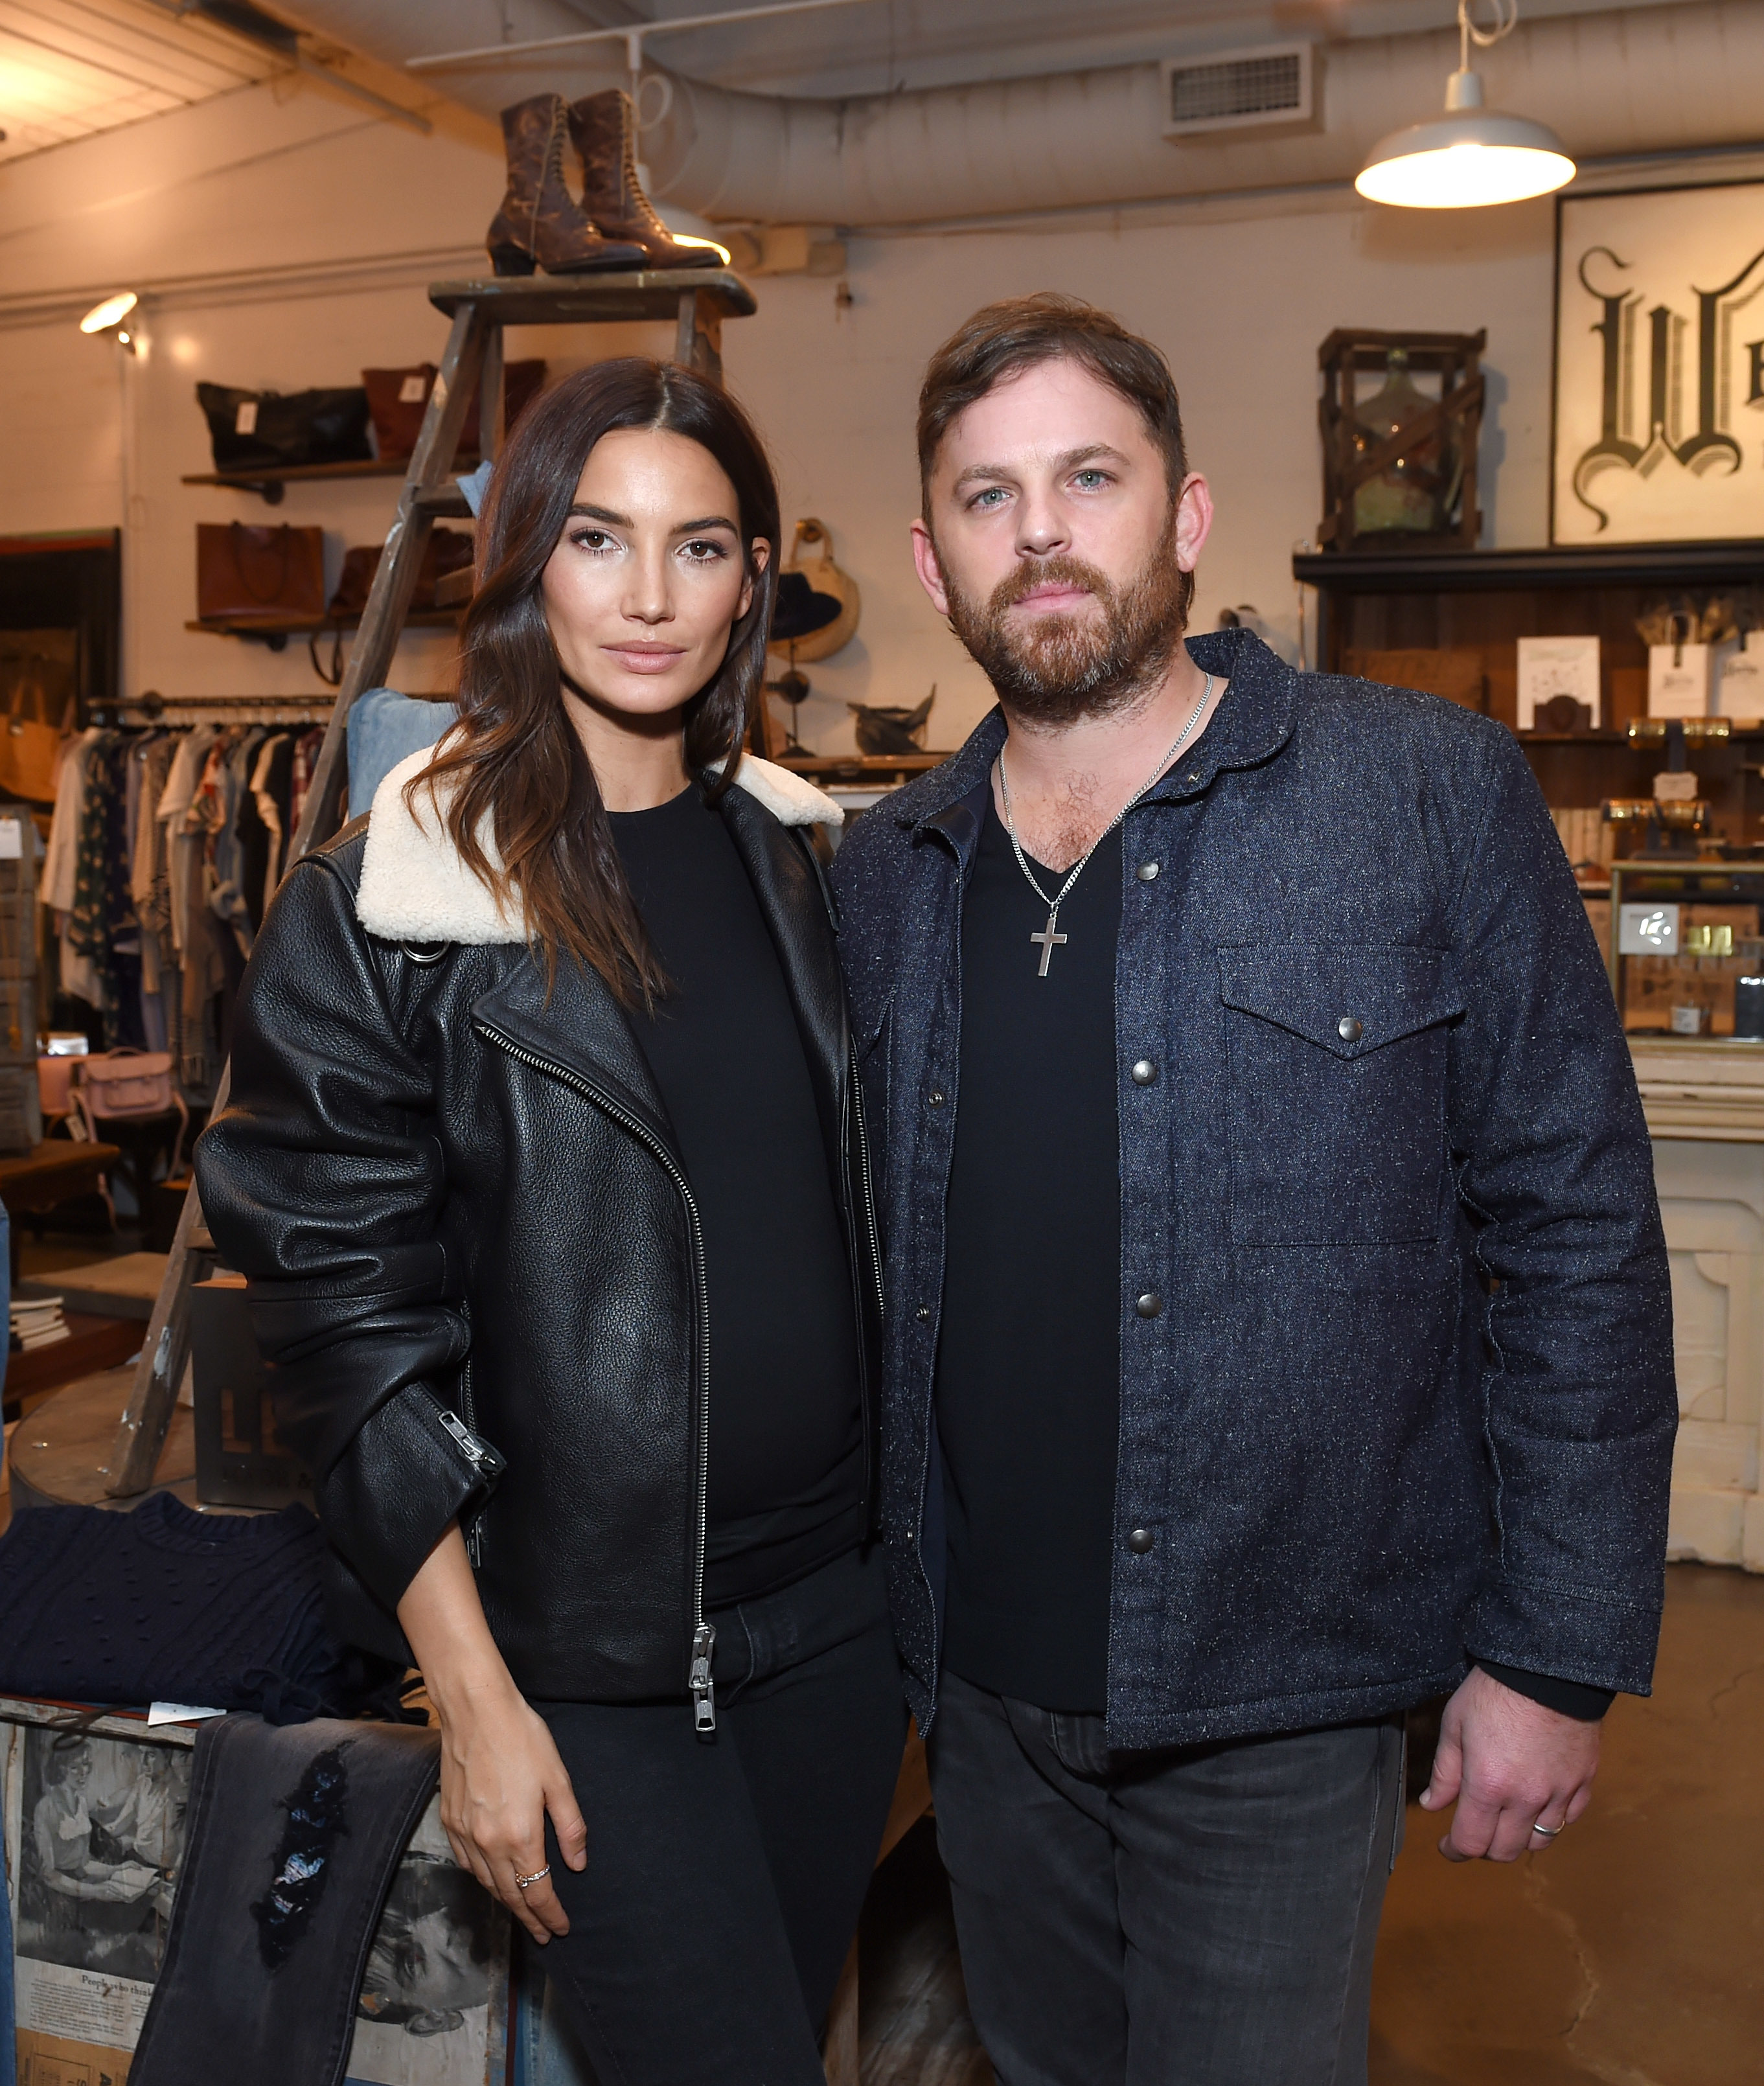 Lily Aldridge and Caleb Followill attend the Lily Aldridge and Levi's Made and Crafted Celebrate Denim In Nashville event in Nashville on Oct. 18, 2018.